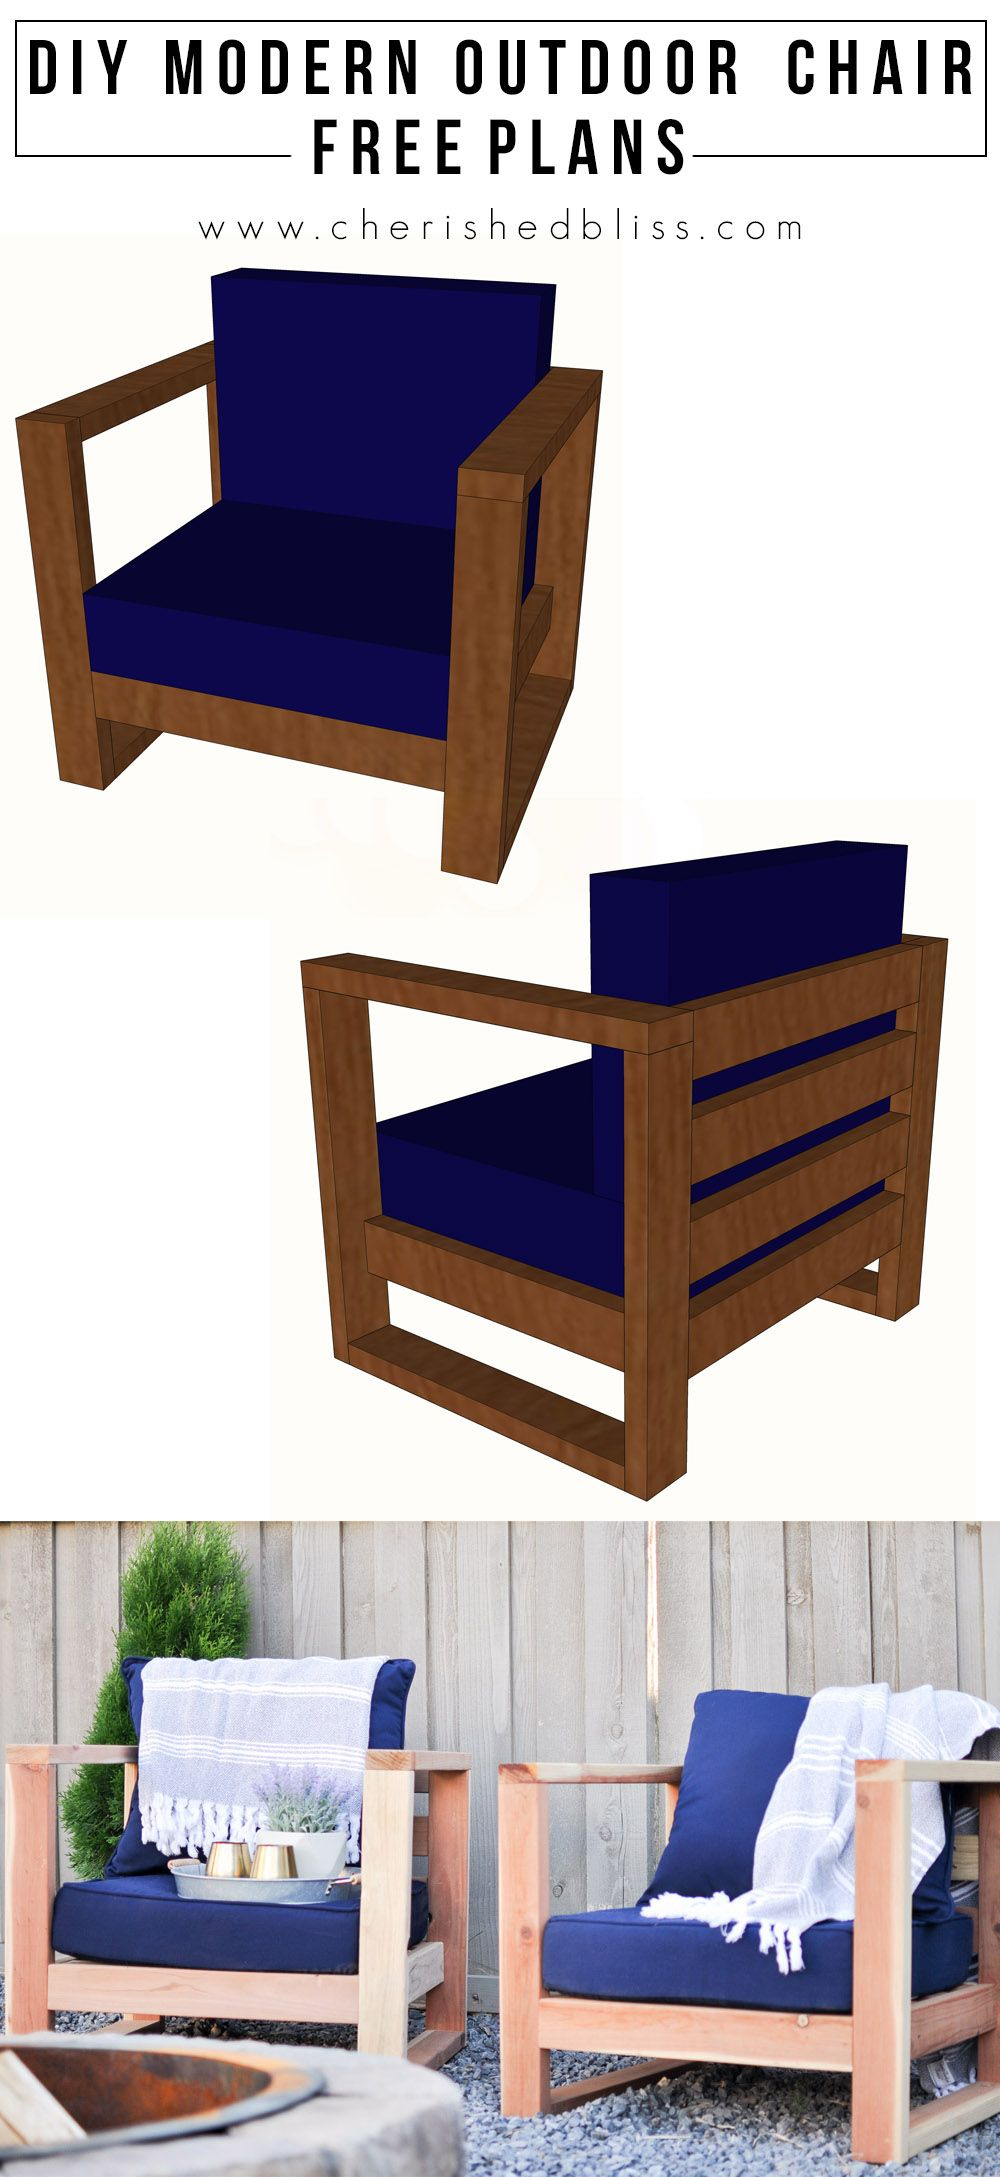 Diy modern outdoor chair free plans cherished bliss diy